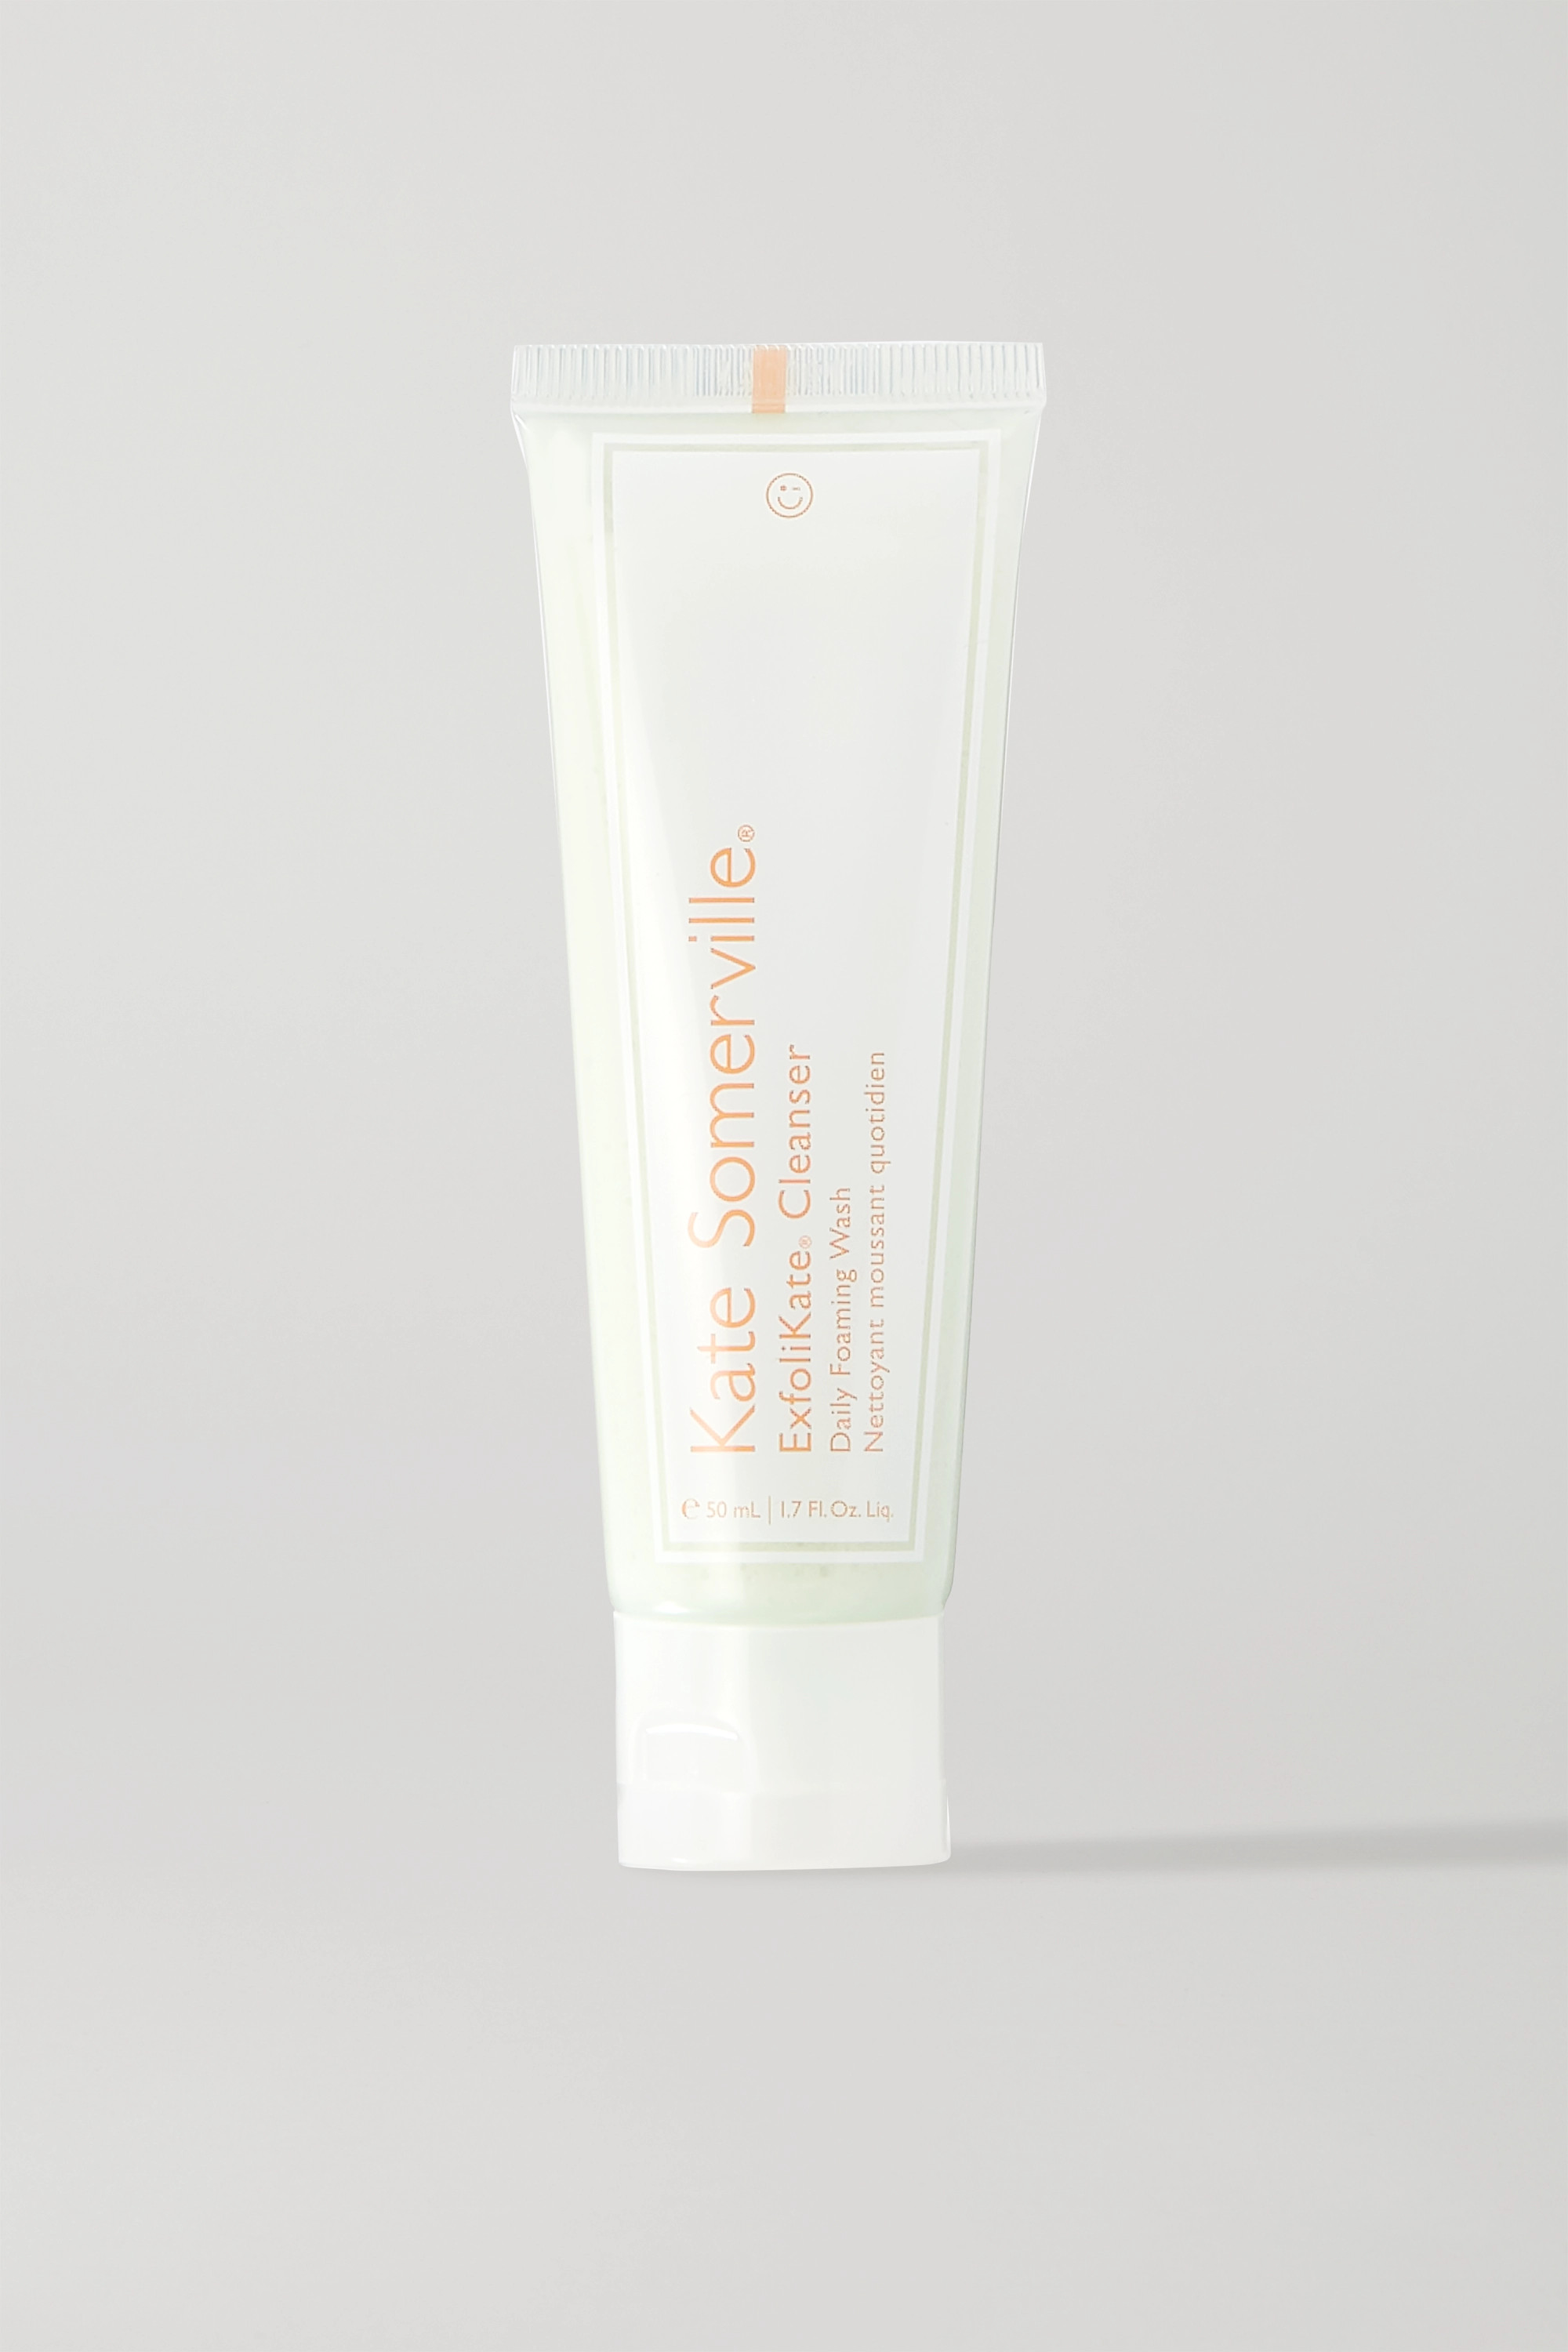 Kate Somerville ExfoliKate® Cleanser Daily Foaming Wash, 50ml